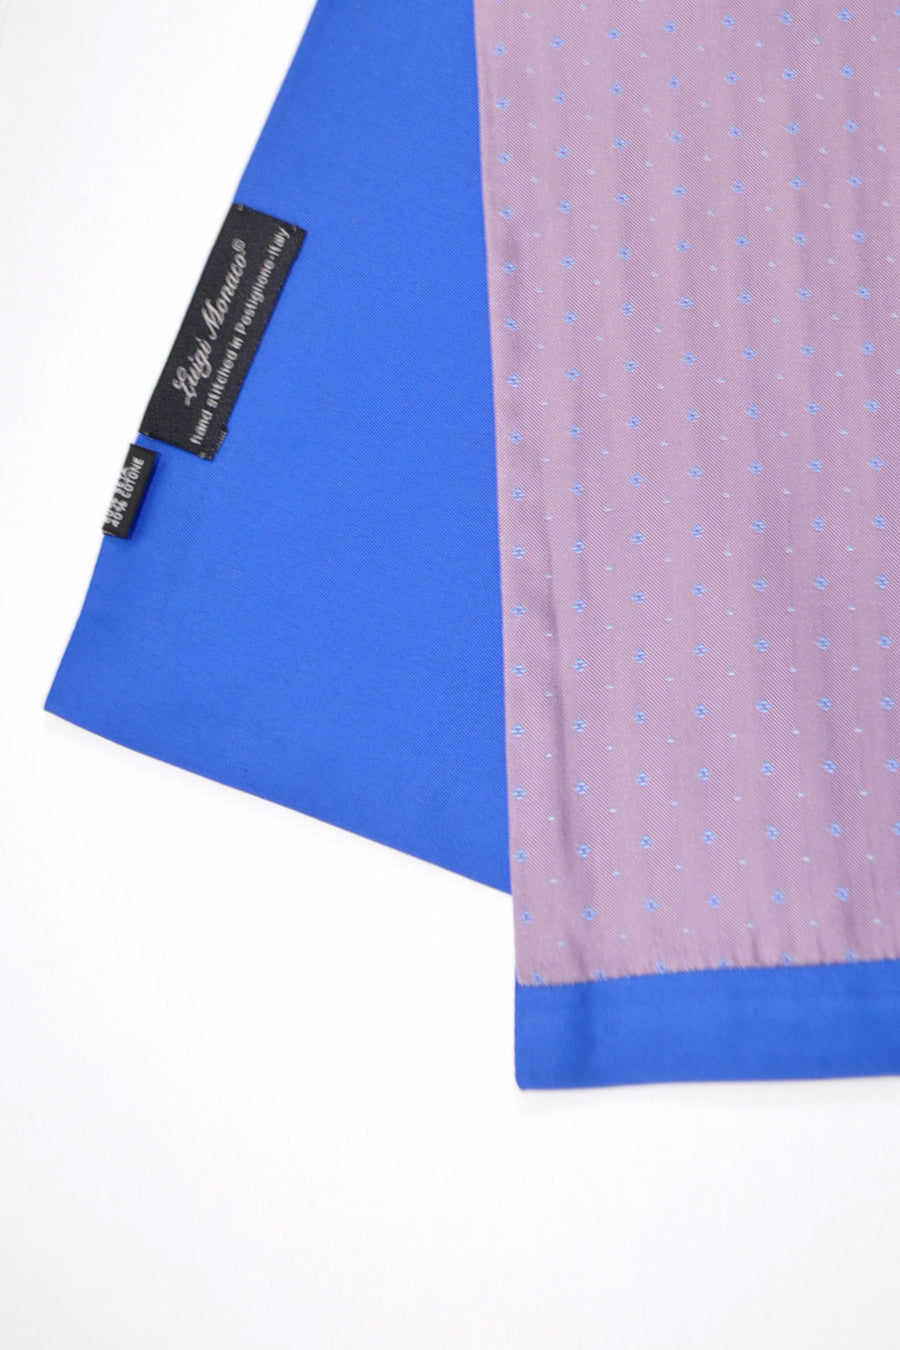 Luigi Monaco Silk Scarf Lilac Royal Blue - Made in Italy FINAL SALE